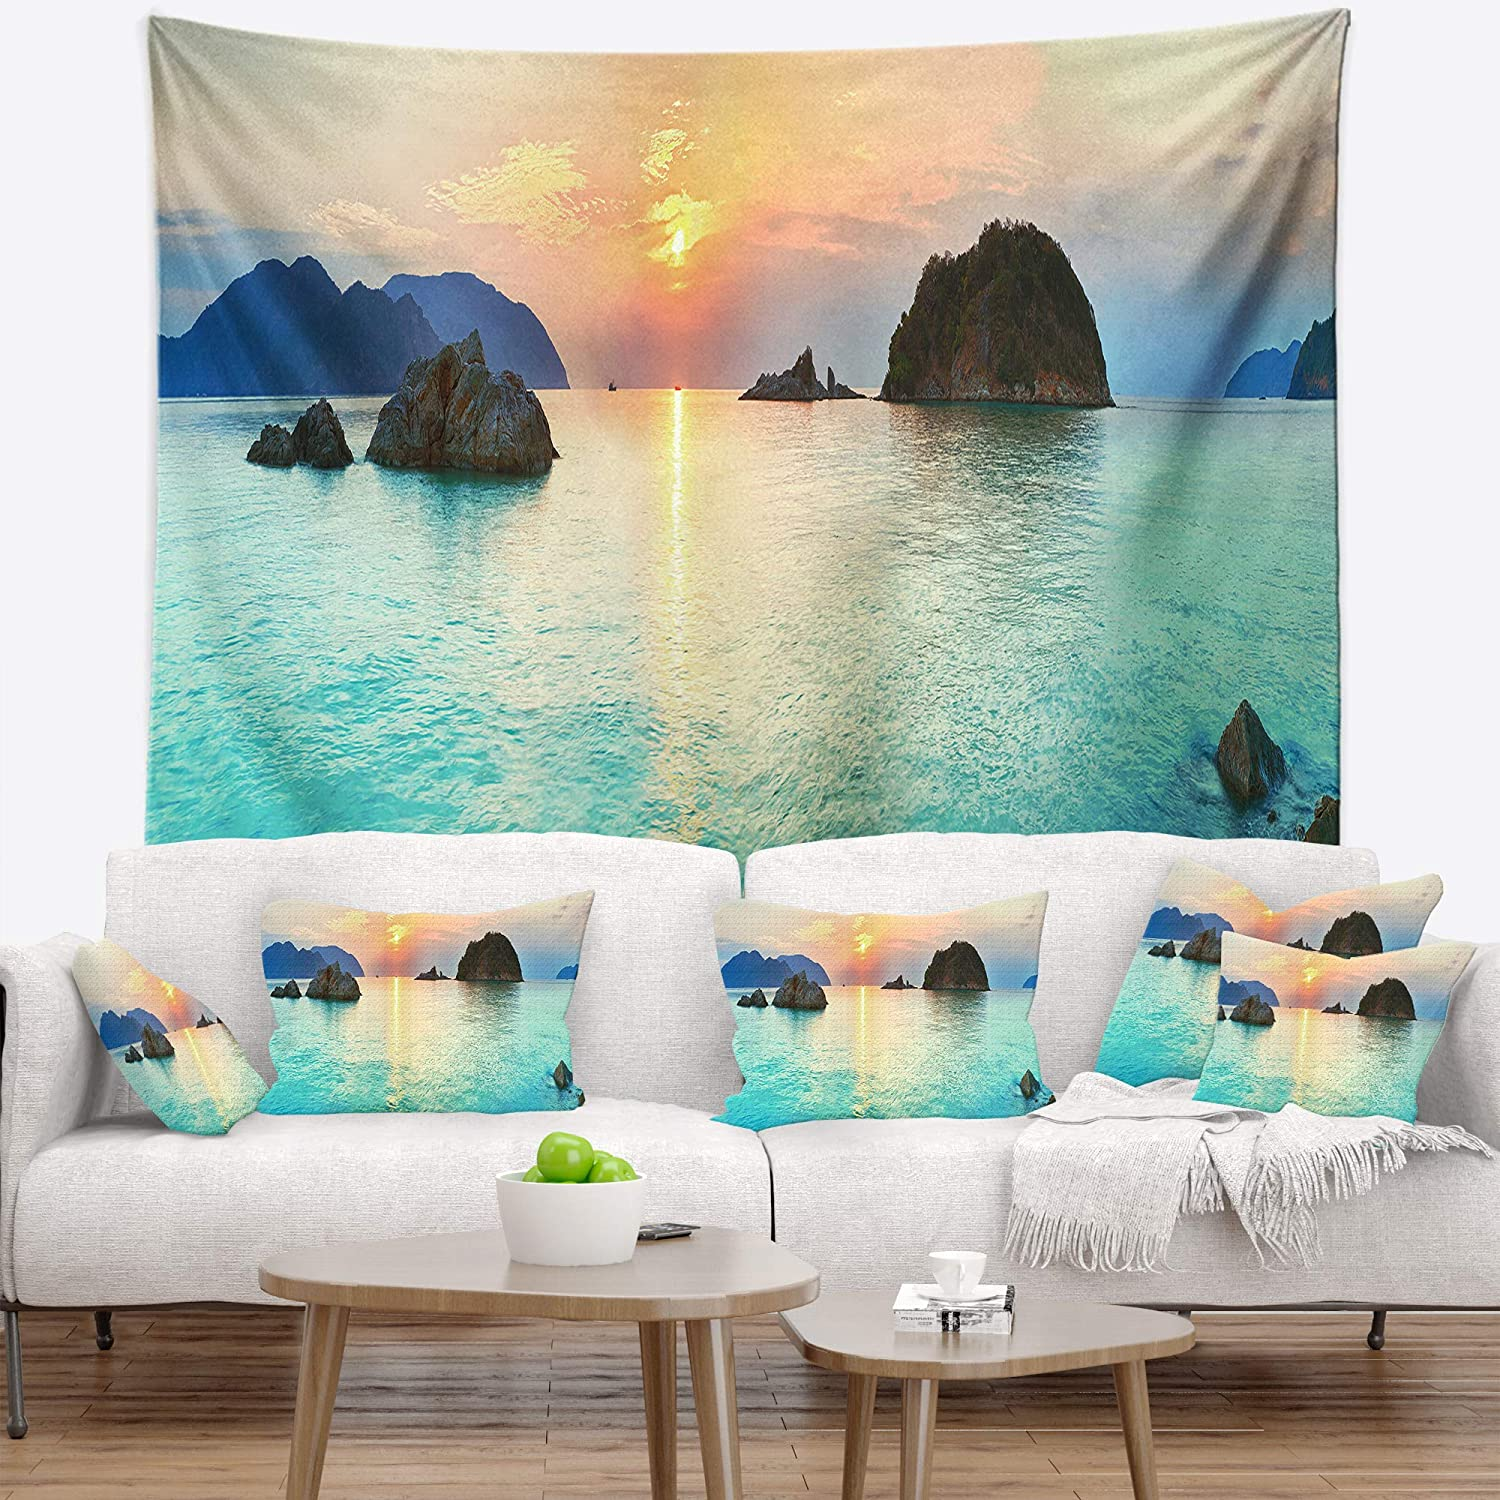 x 50 in Designart TAP6413-60-50  Sunrise Panorama Photography Blanket D/écor Art for Home and Office Wall Tapestry Large Created On Lightweight Polyester Fabric 60 in